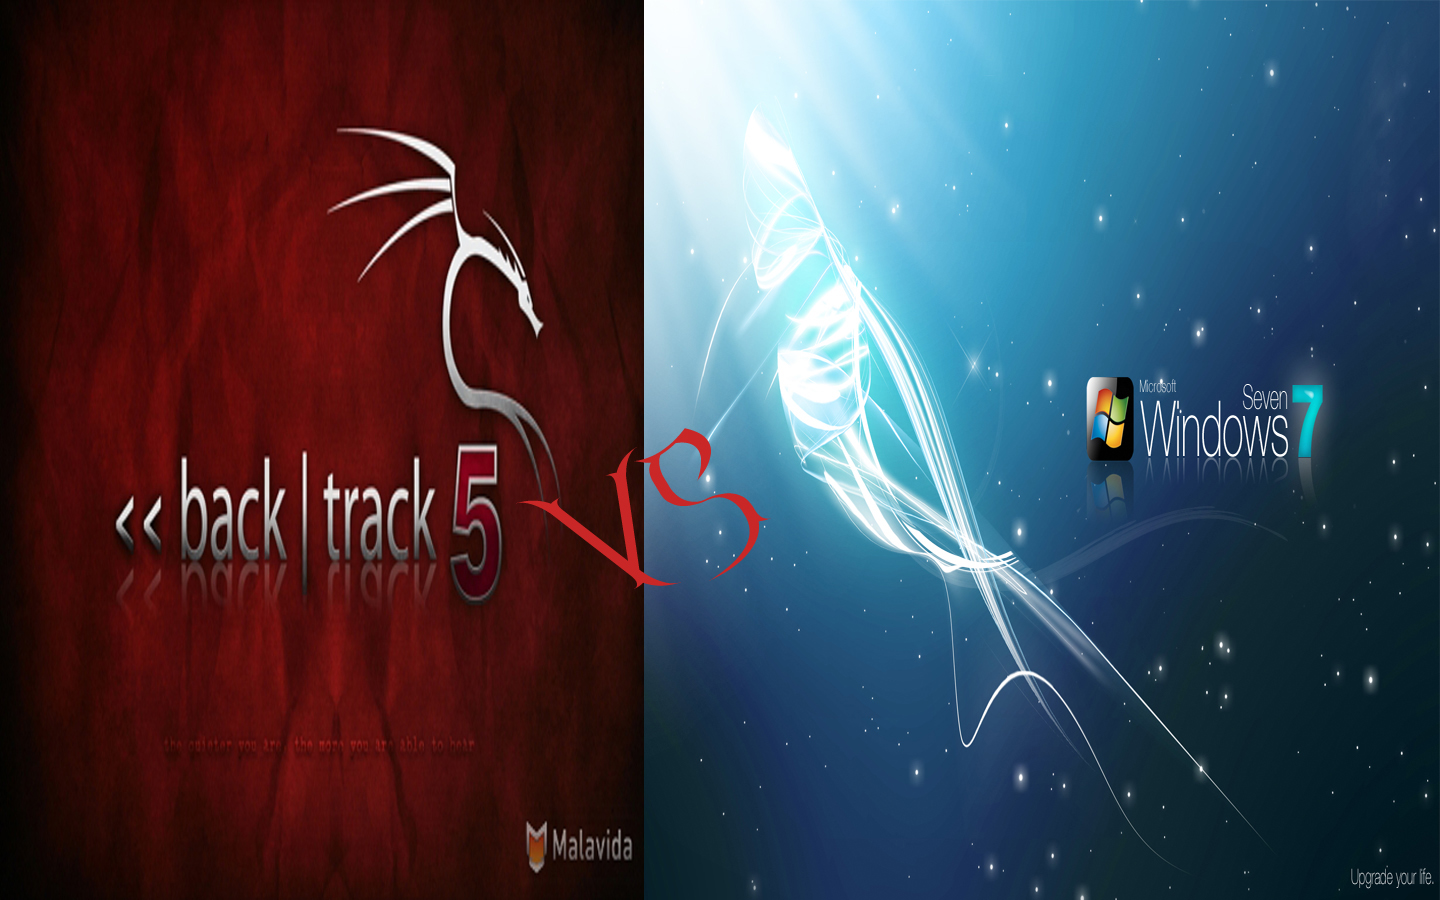 Gm Hacker Wallpaper: TeChNoLoGy BeAtS: How To Uninstall Backtrack 5 Dual Boot